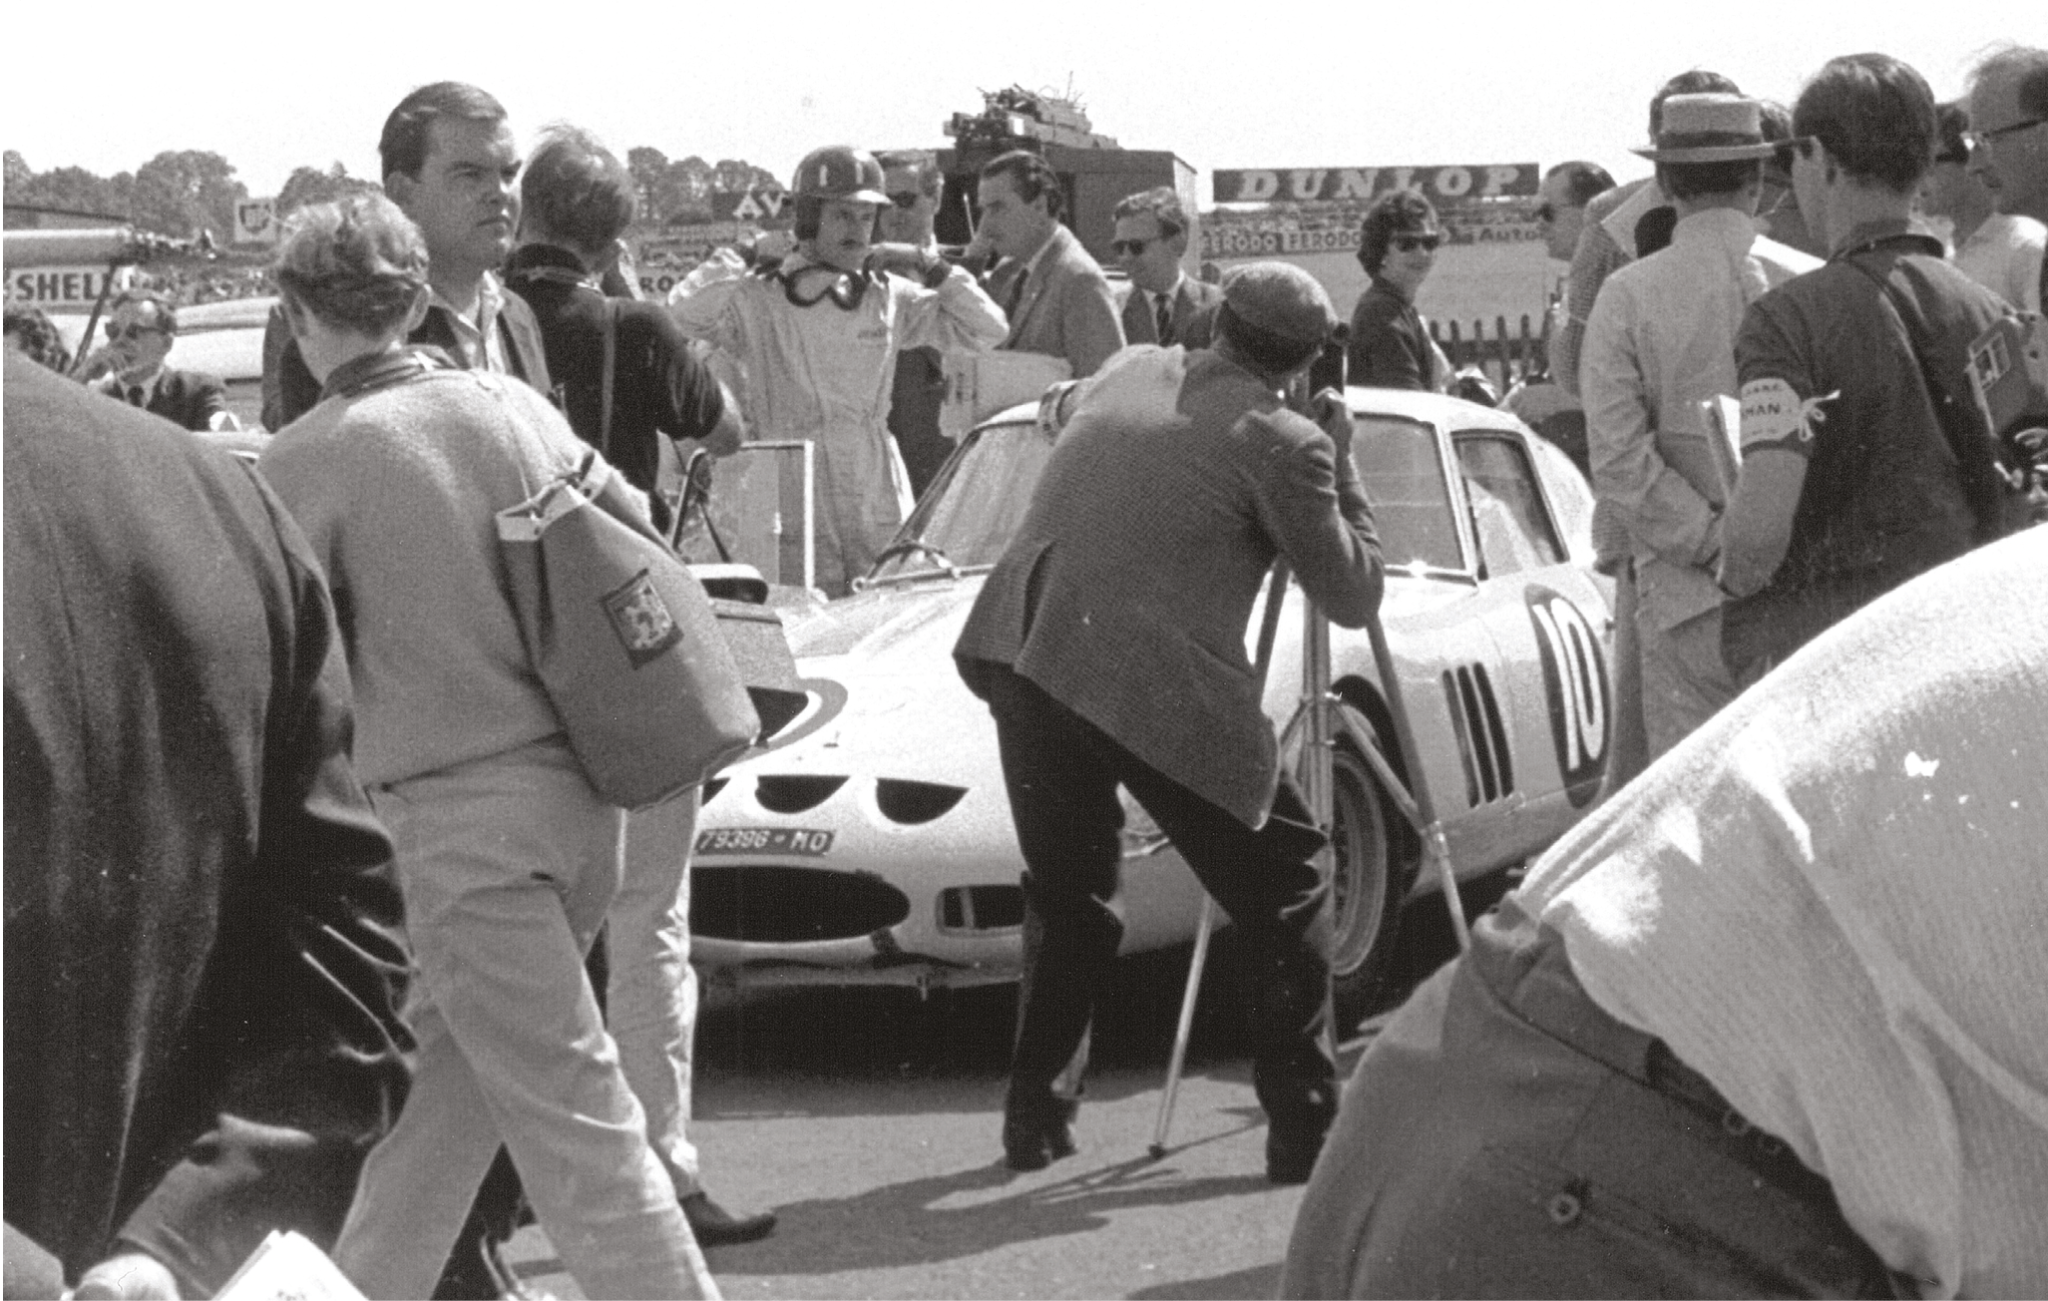 First entered in a Coombs E-type for the 1962 TT, Graham Hill switched to the team's 250 GTO